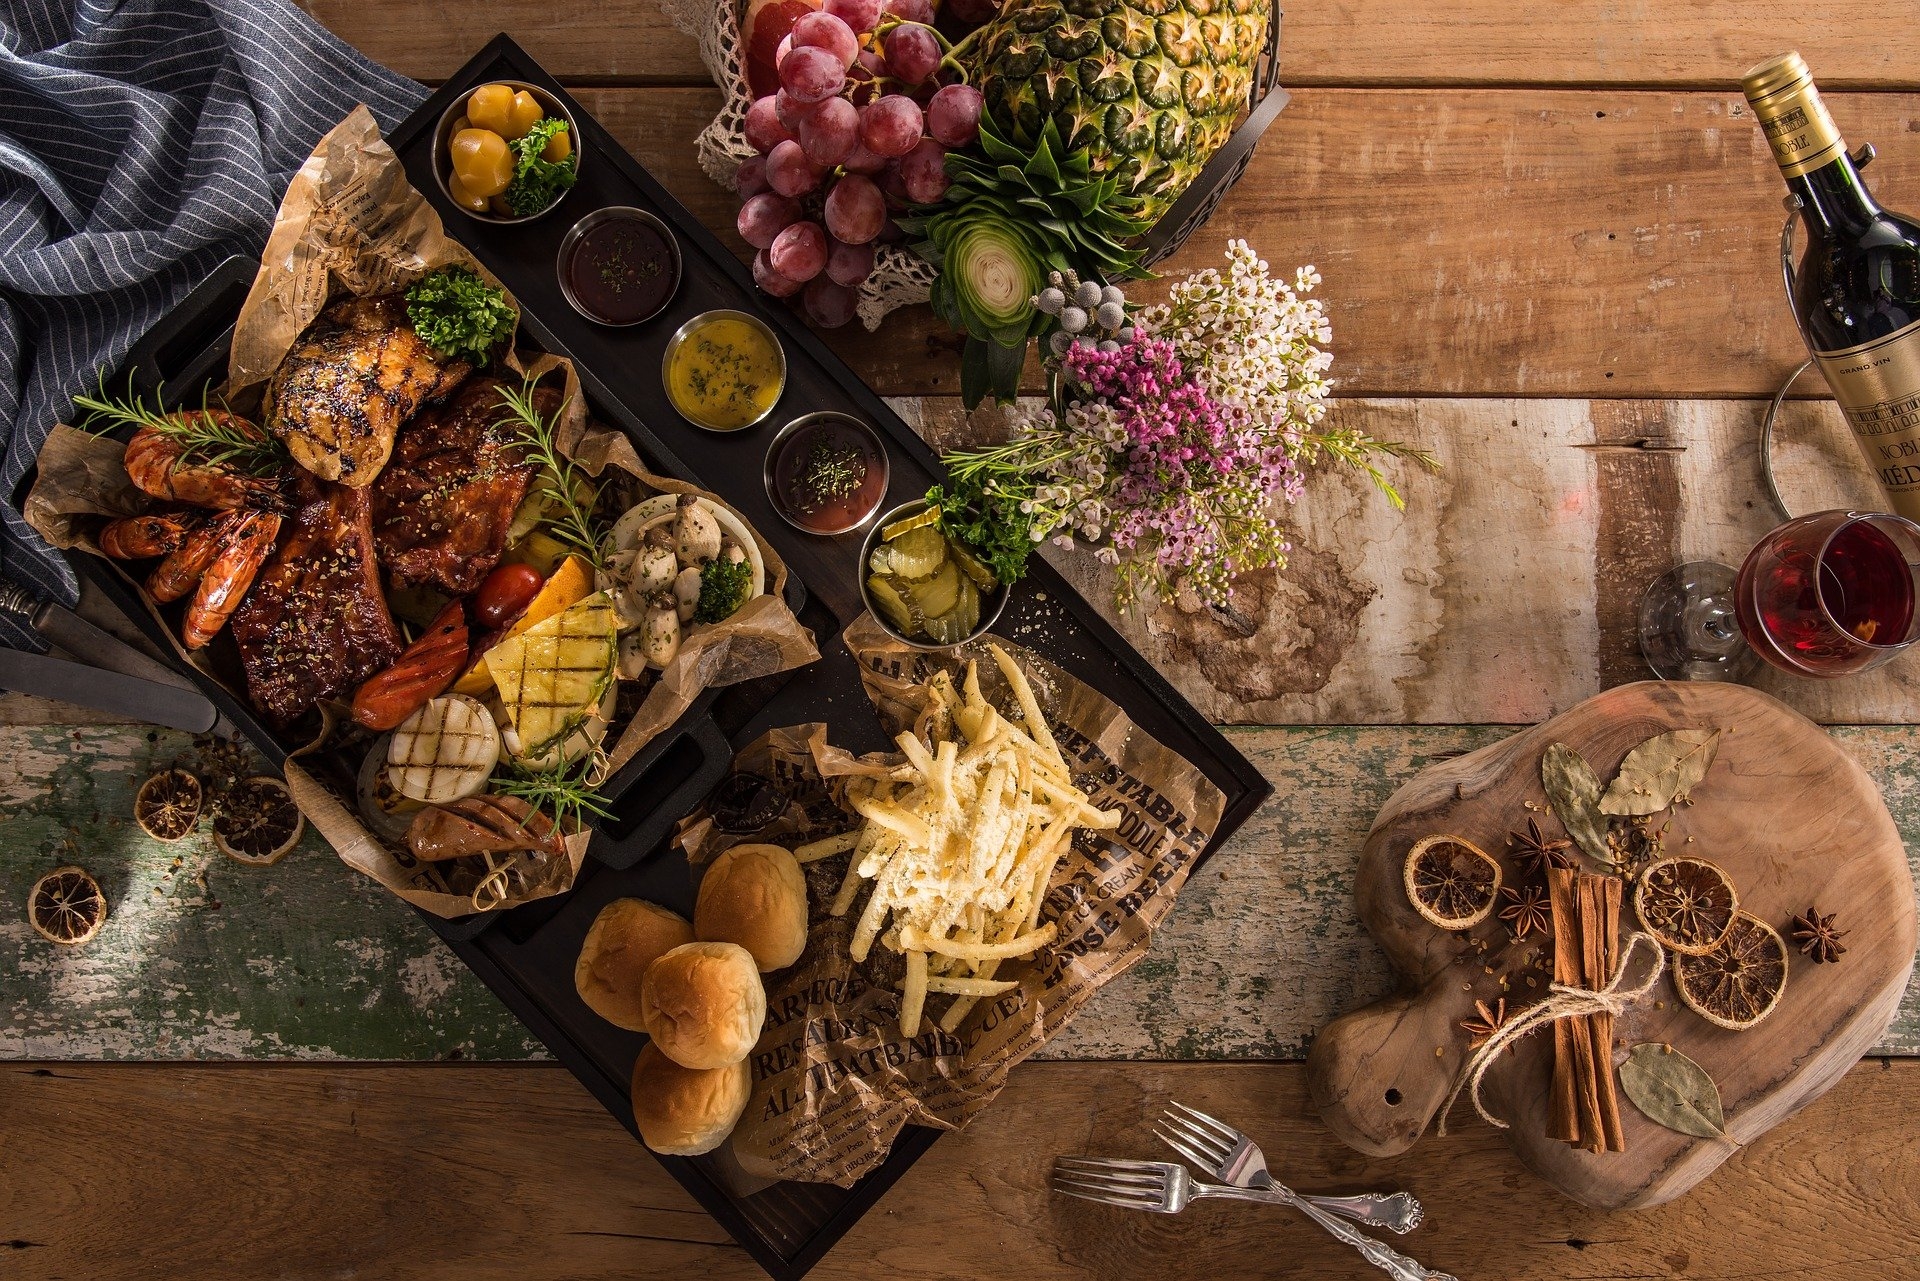 Different kinds of foods on a tray.